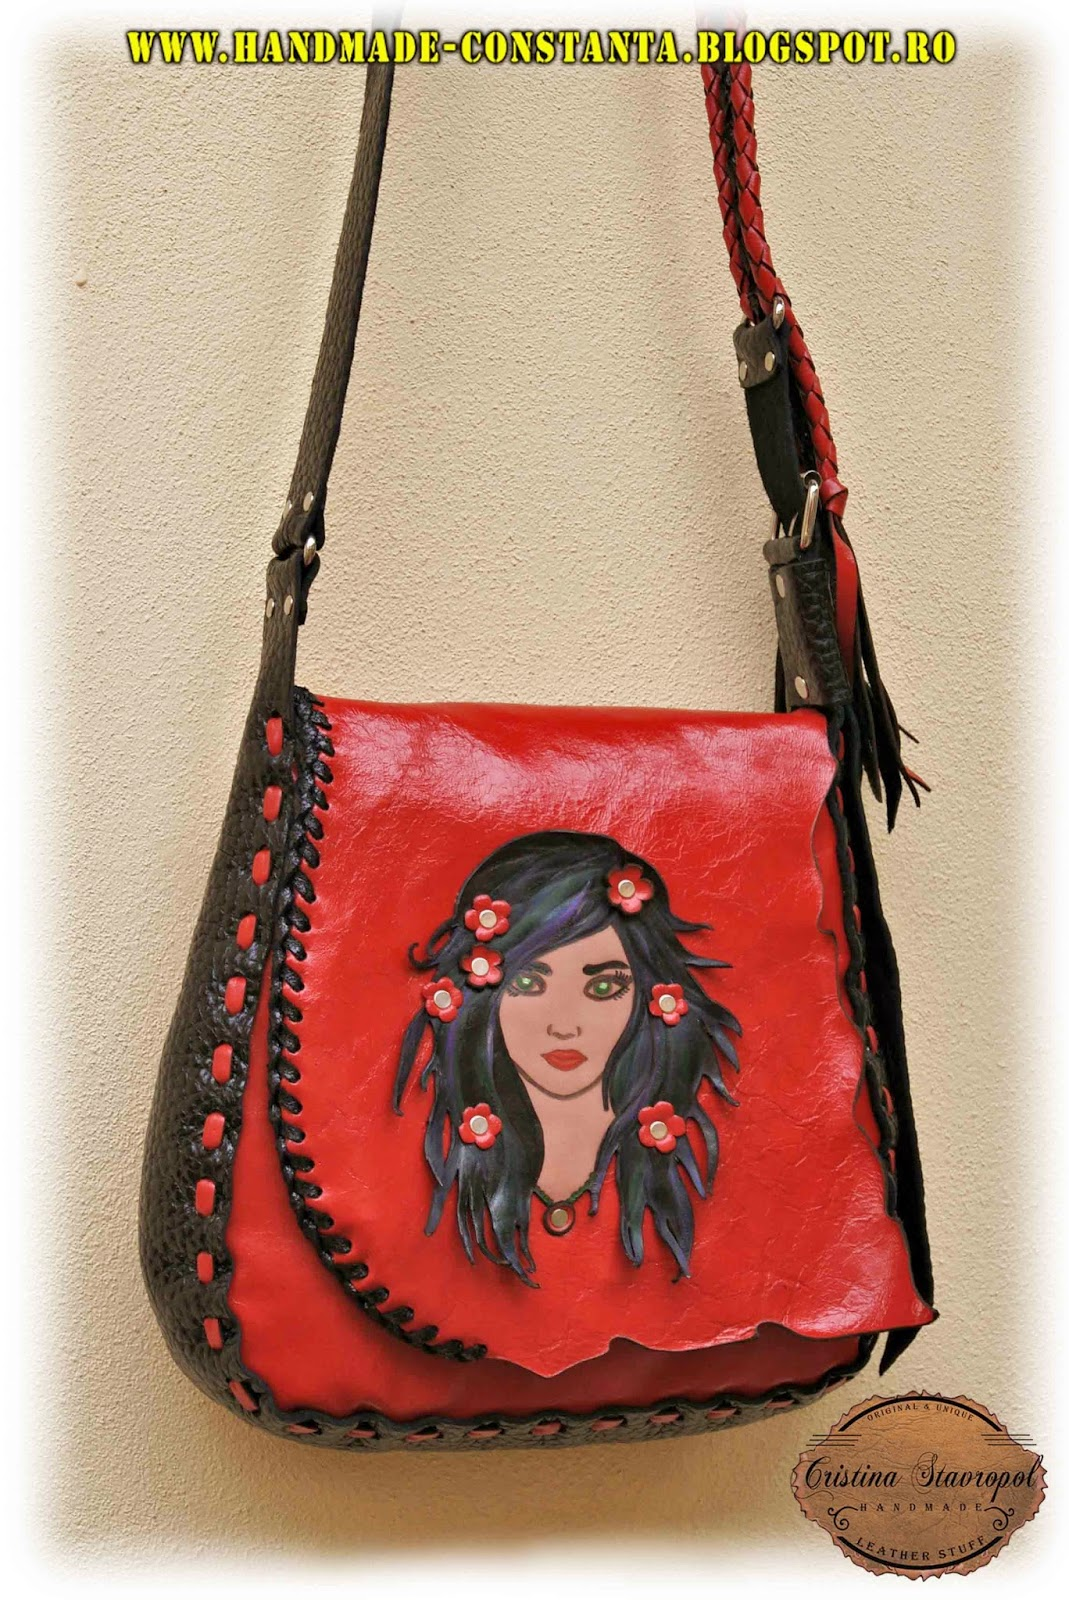 Red leather bag / girl with flowers in hair.